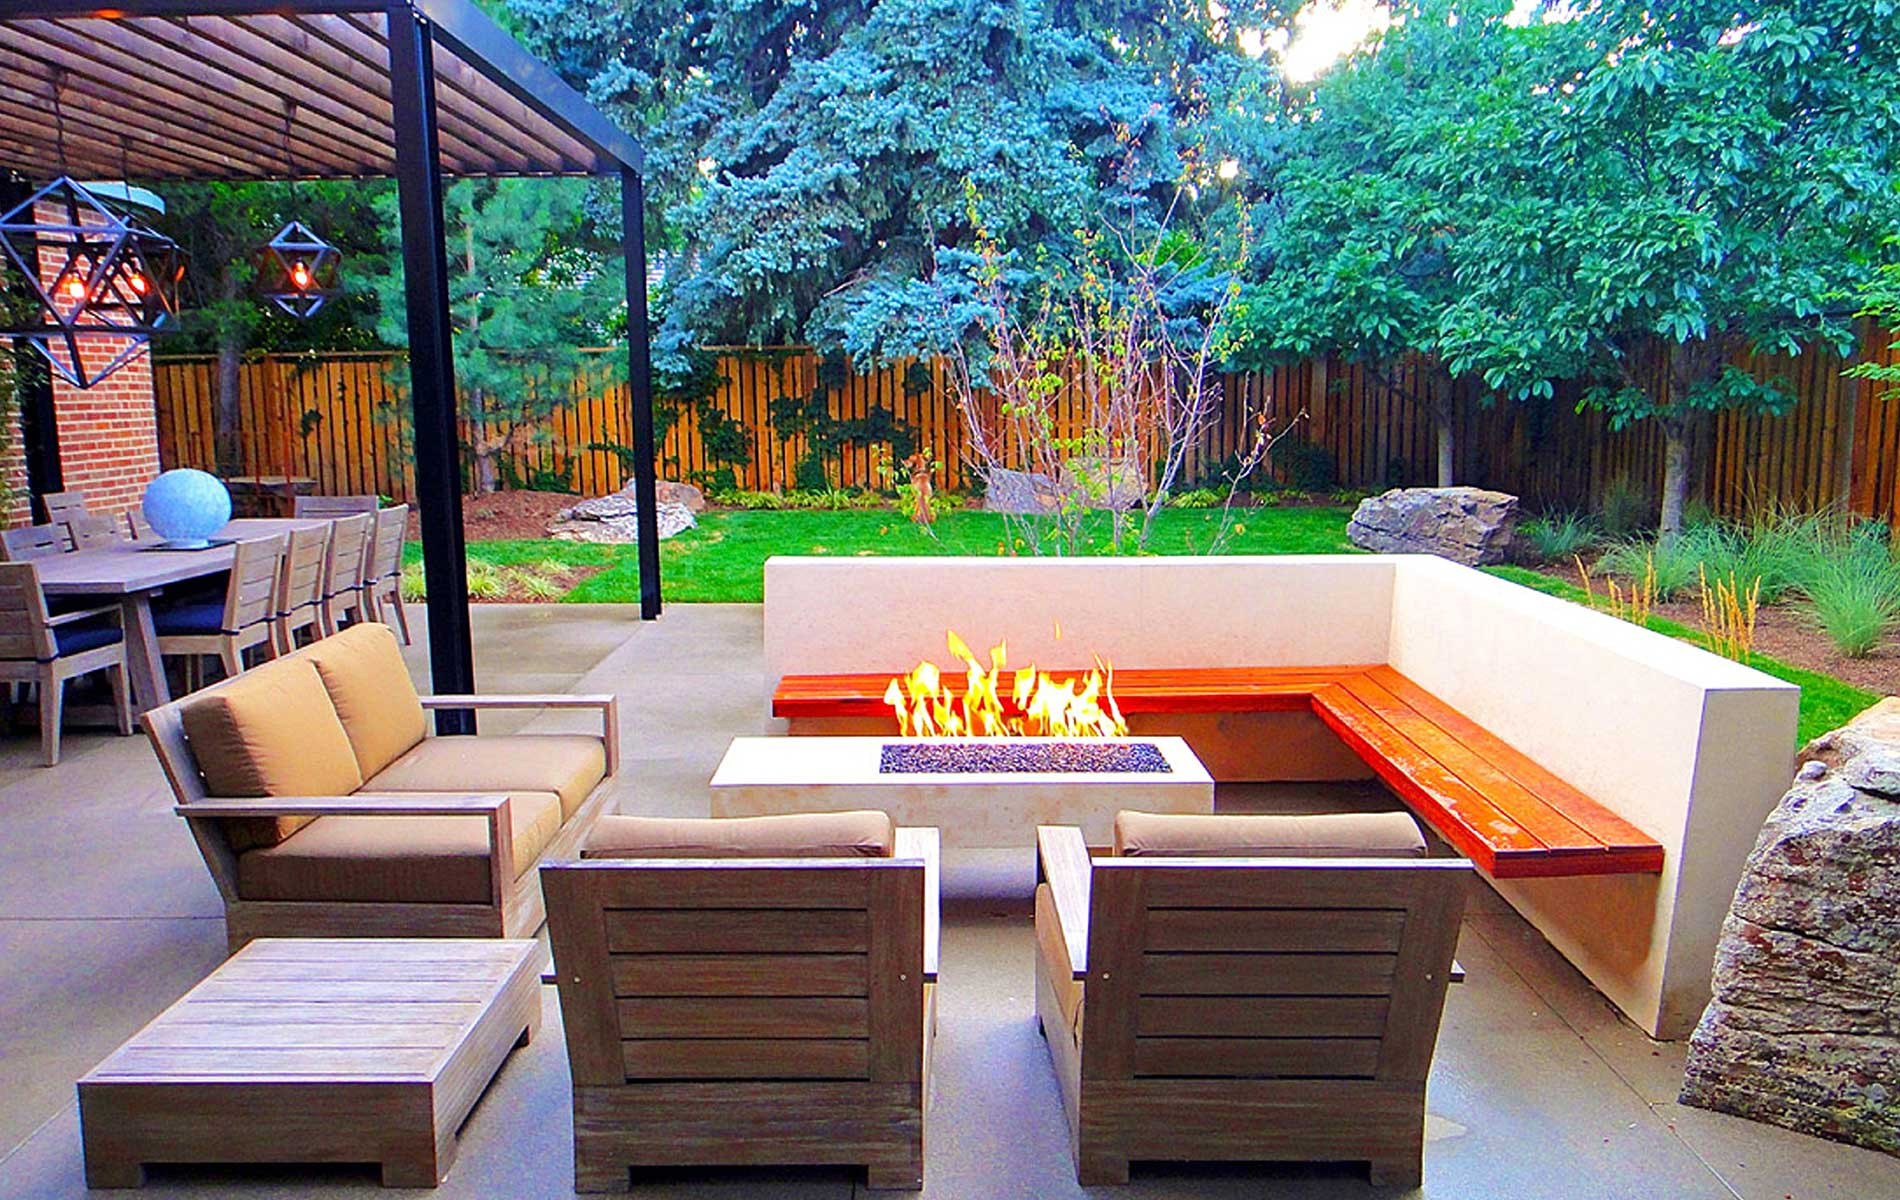 Sleek Modern Outdoor Living Space in Park Hill - Mile High ... on Small Backyard Living Spaces  id=58869